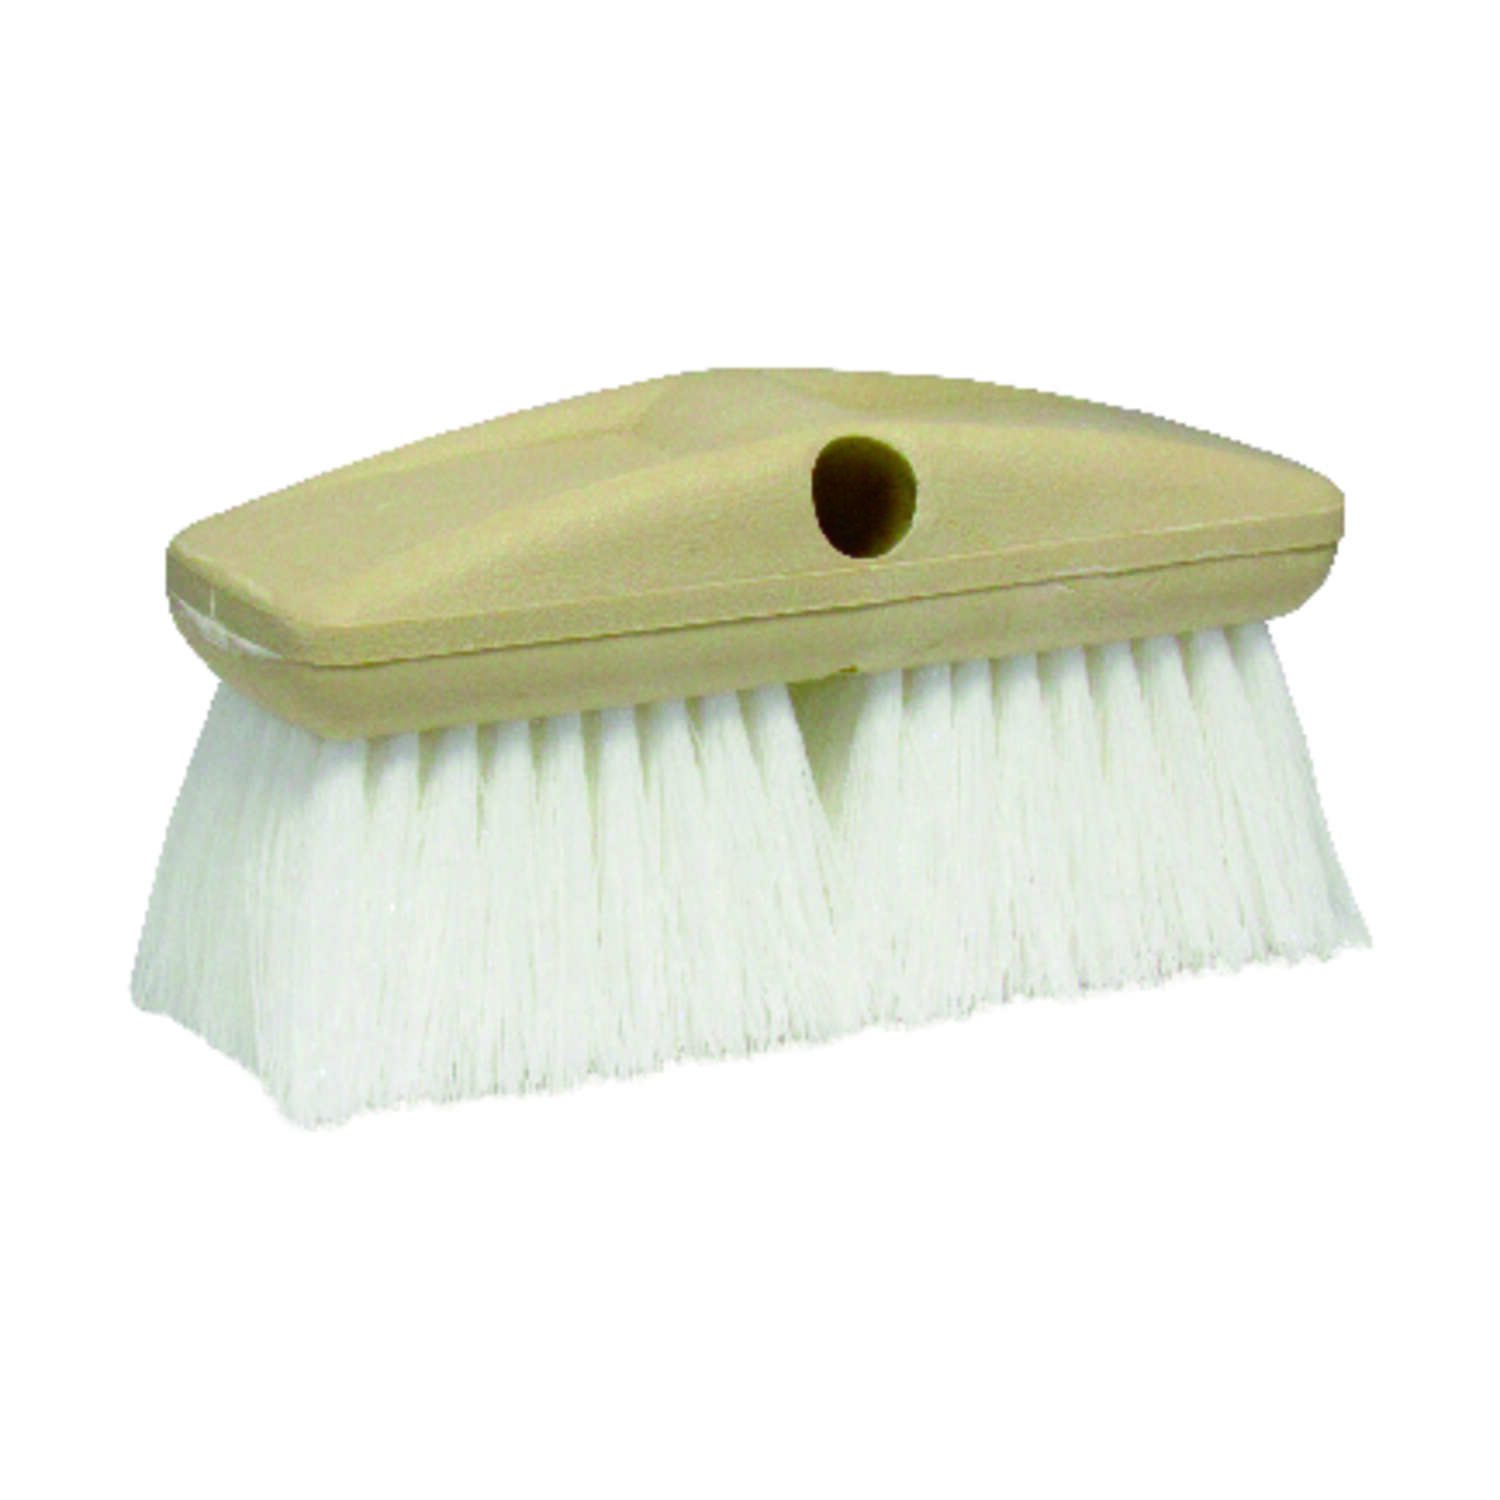 Star Brite 8 in. Scrub Brush